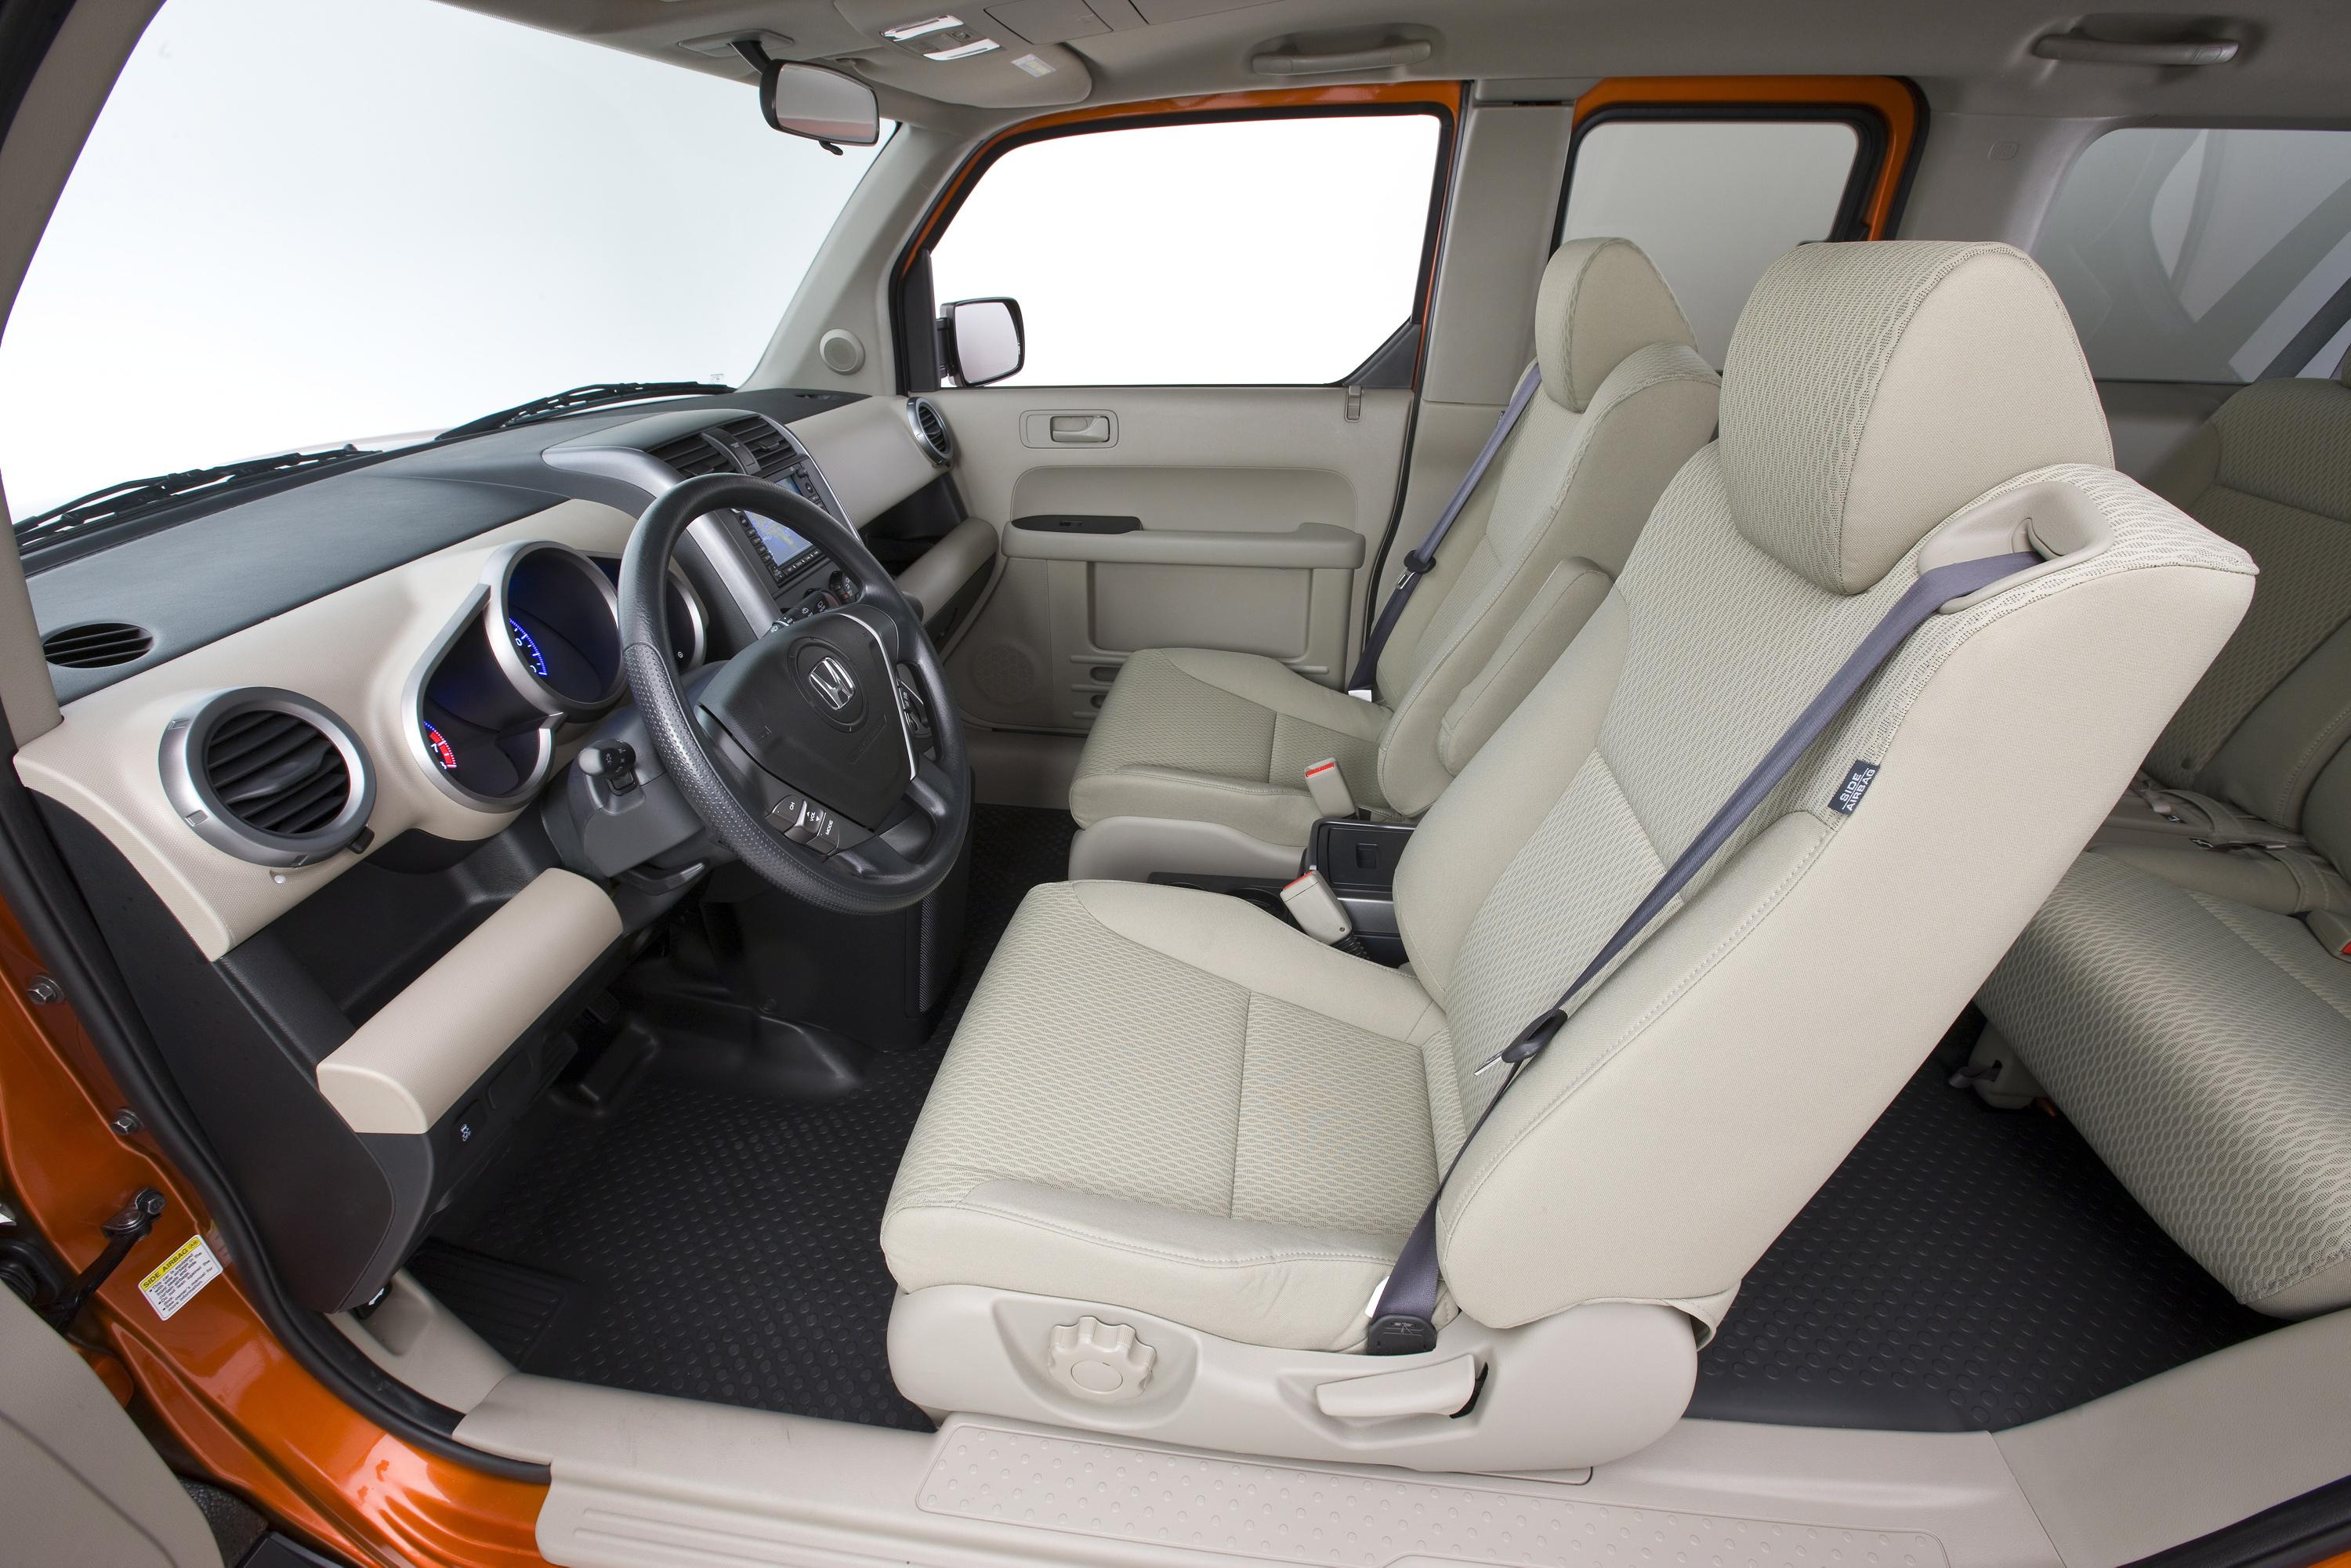 restyled 2009 honda element offers new high tech functional features rh automobilesreview com Honda Element Review Honda Element Manual Transmission Diagram